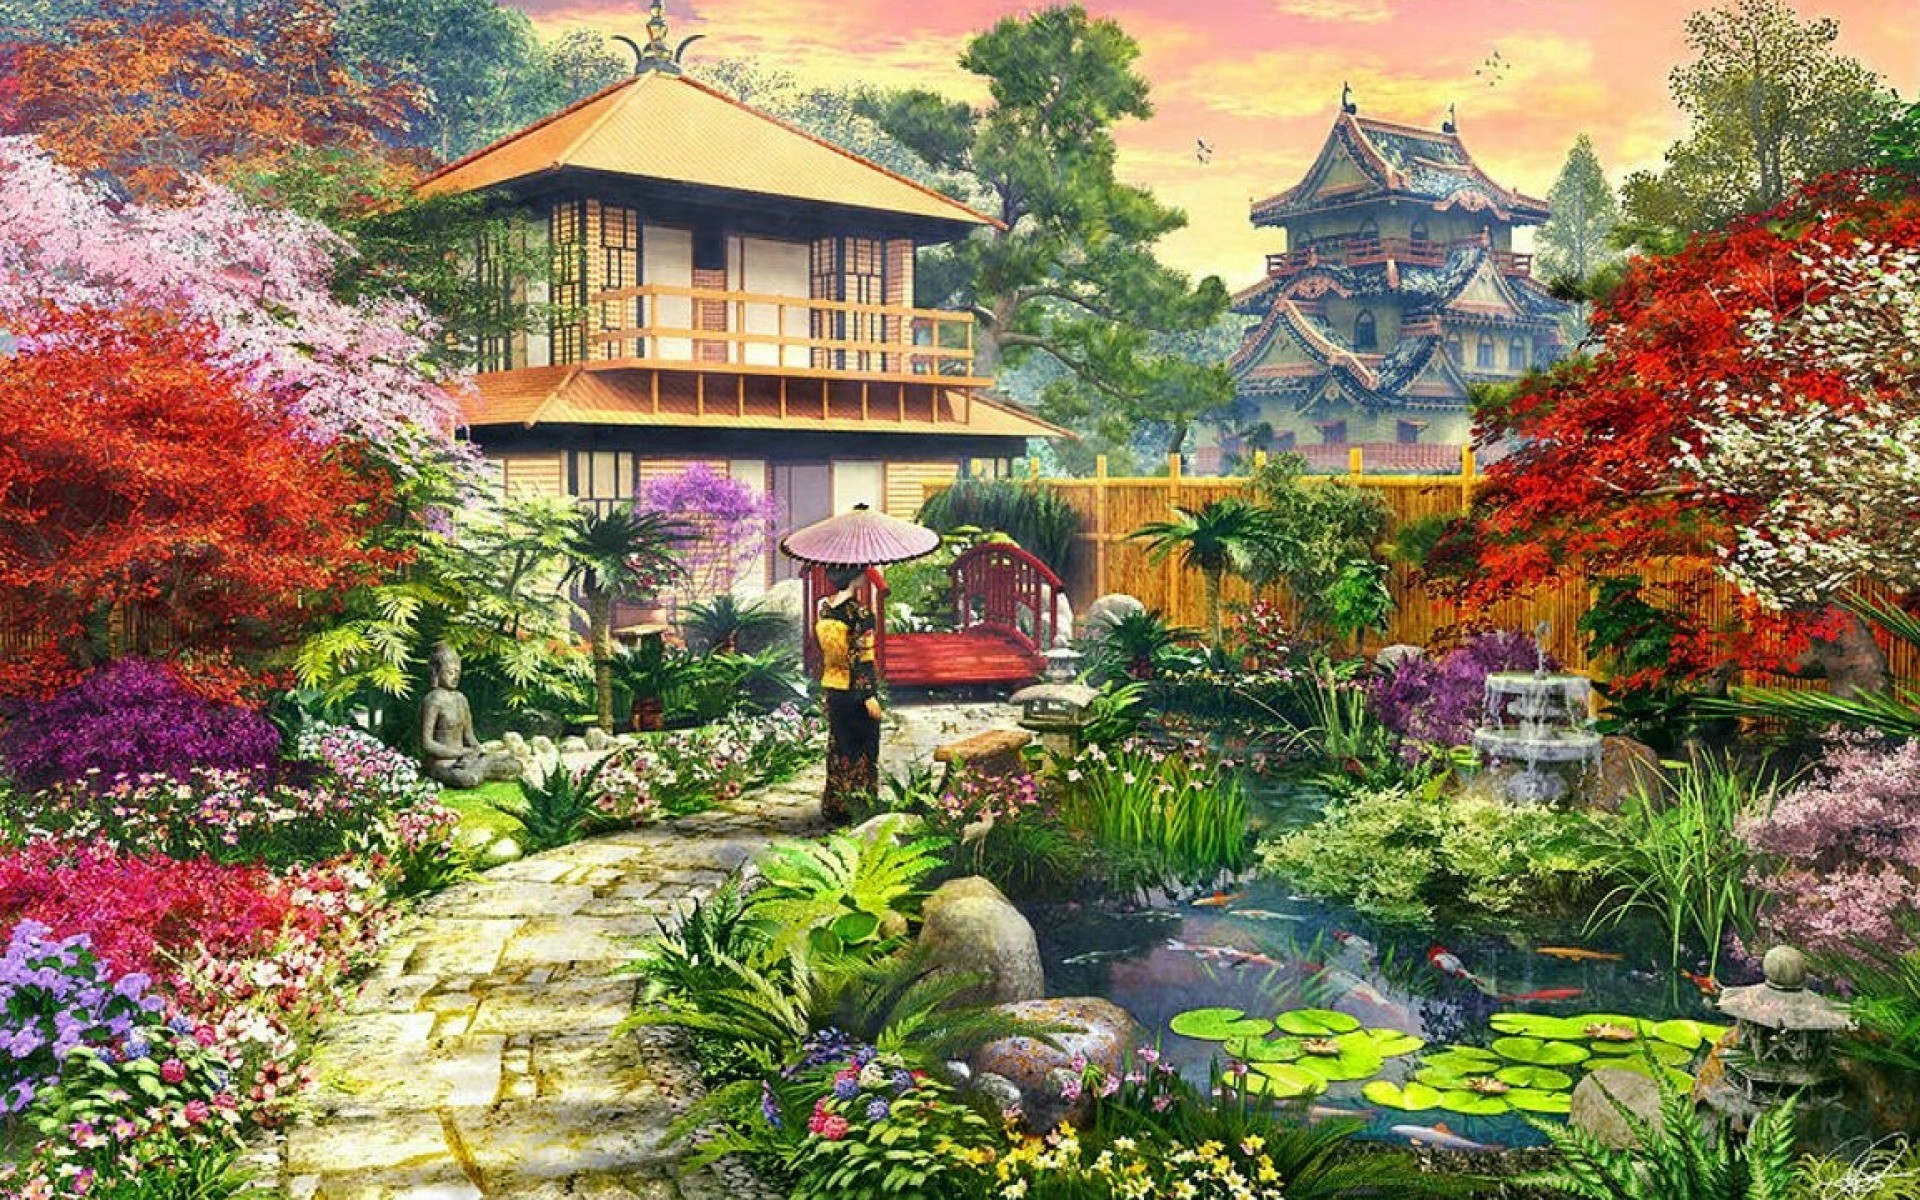 Res: 1920x1200, Image: Splendid Japanese Garden wallpapers and stock photos. Â«